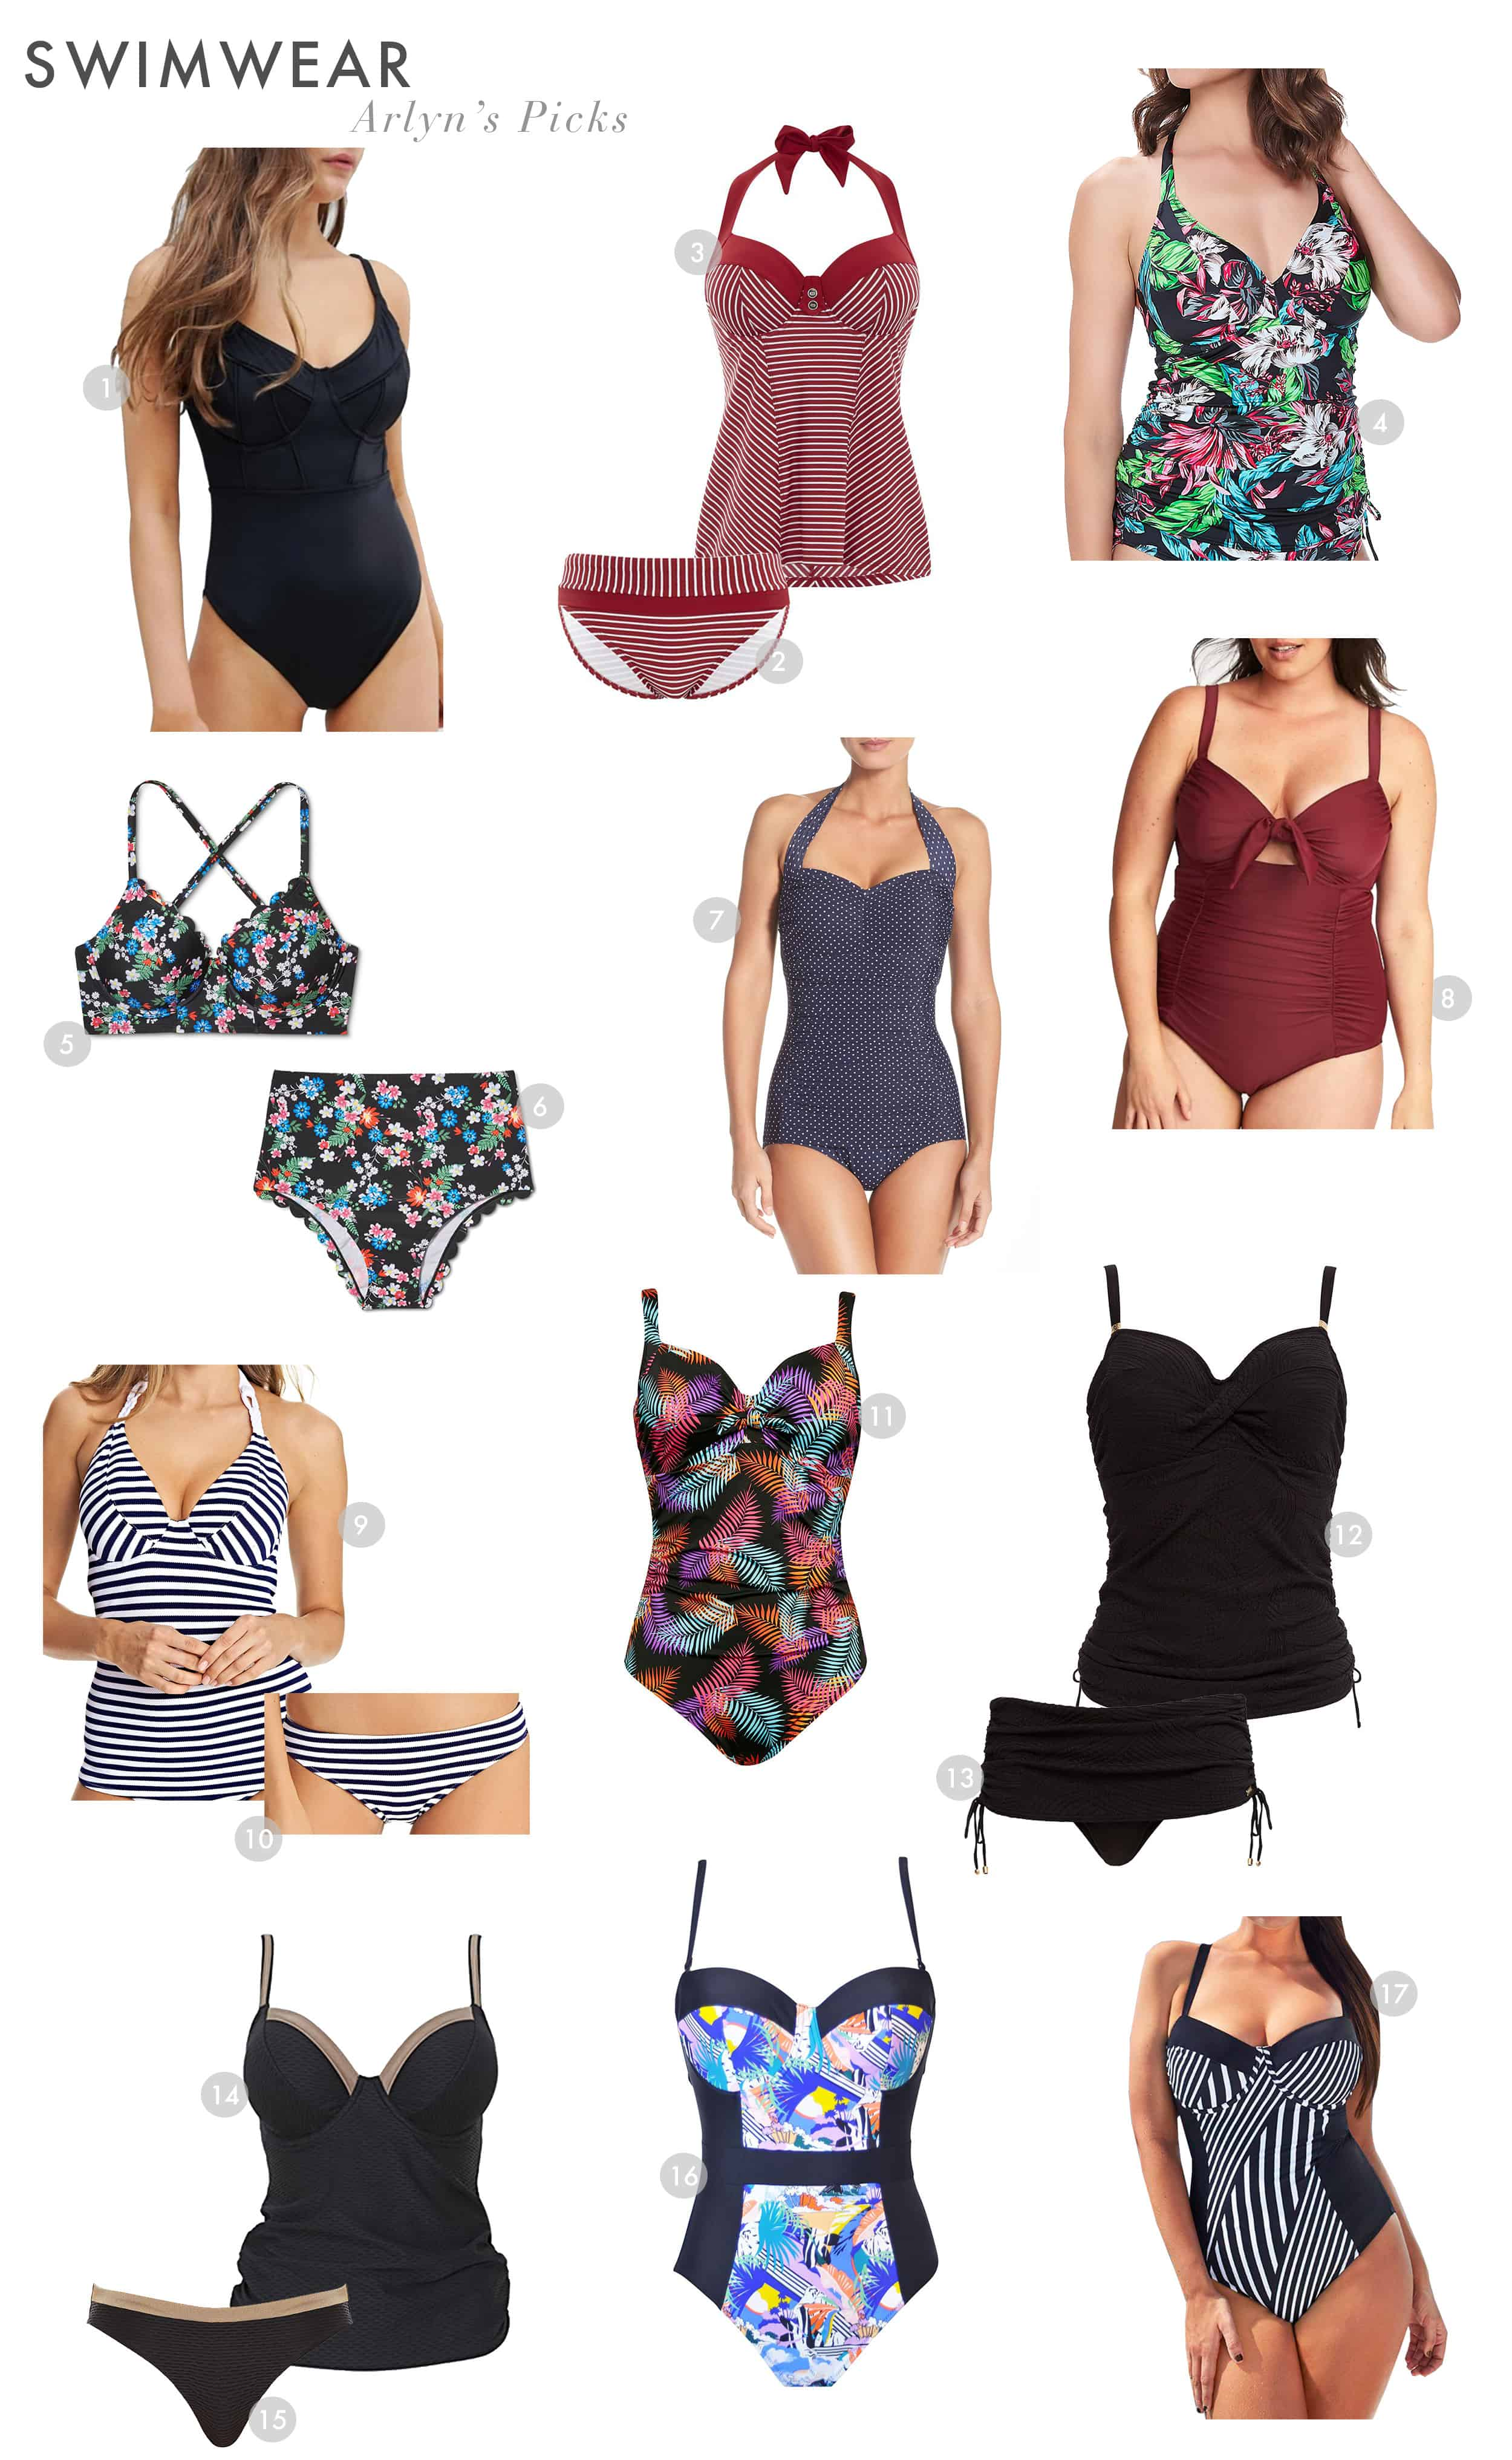 Emily Henderson Swimsuits Different Body Types Summmer Arlyn 2